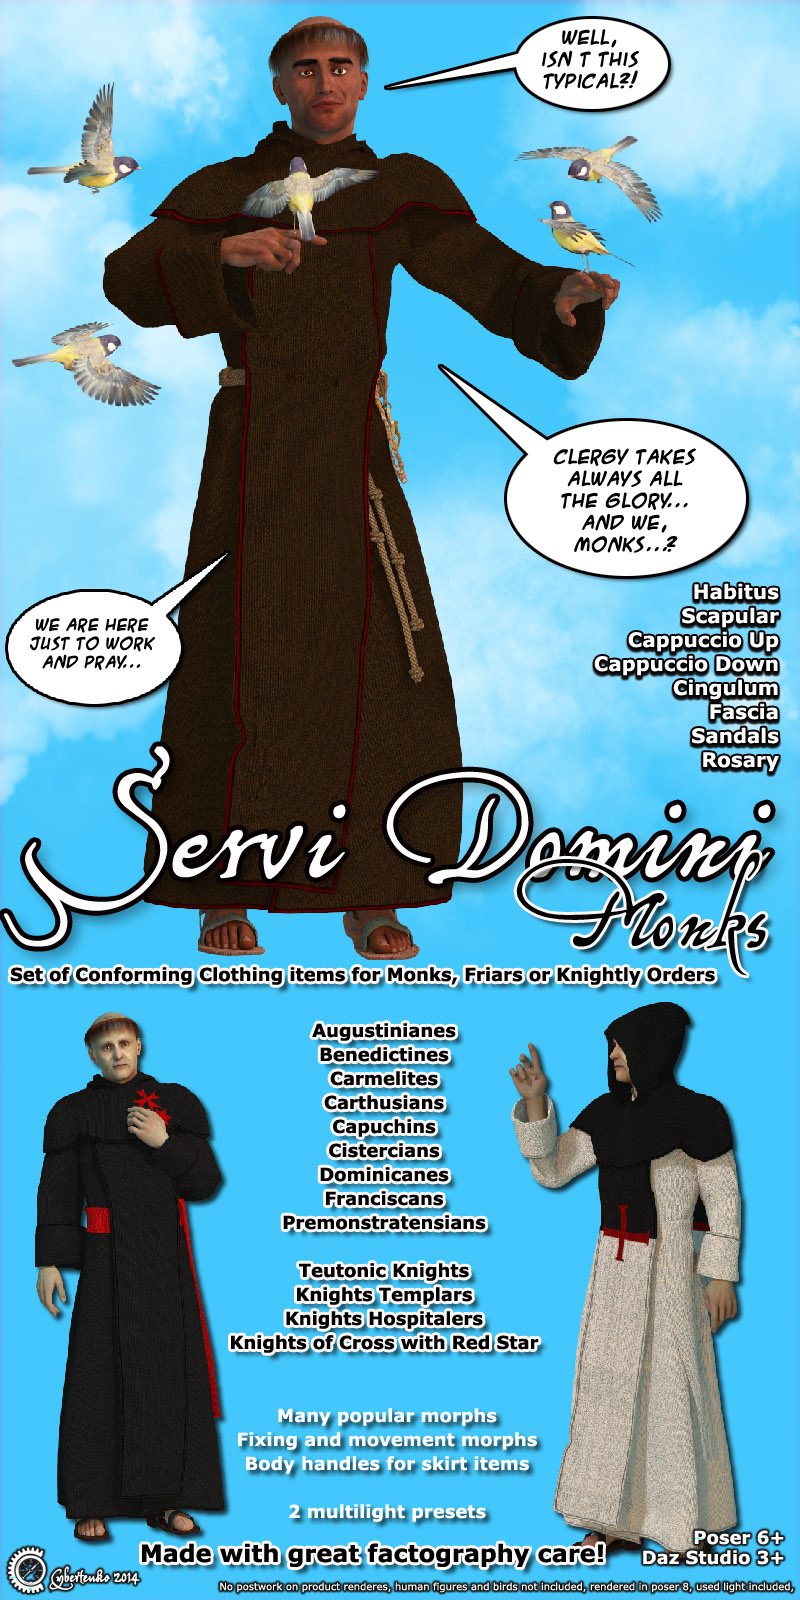 Servi Domini - Monks